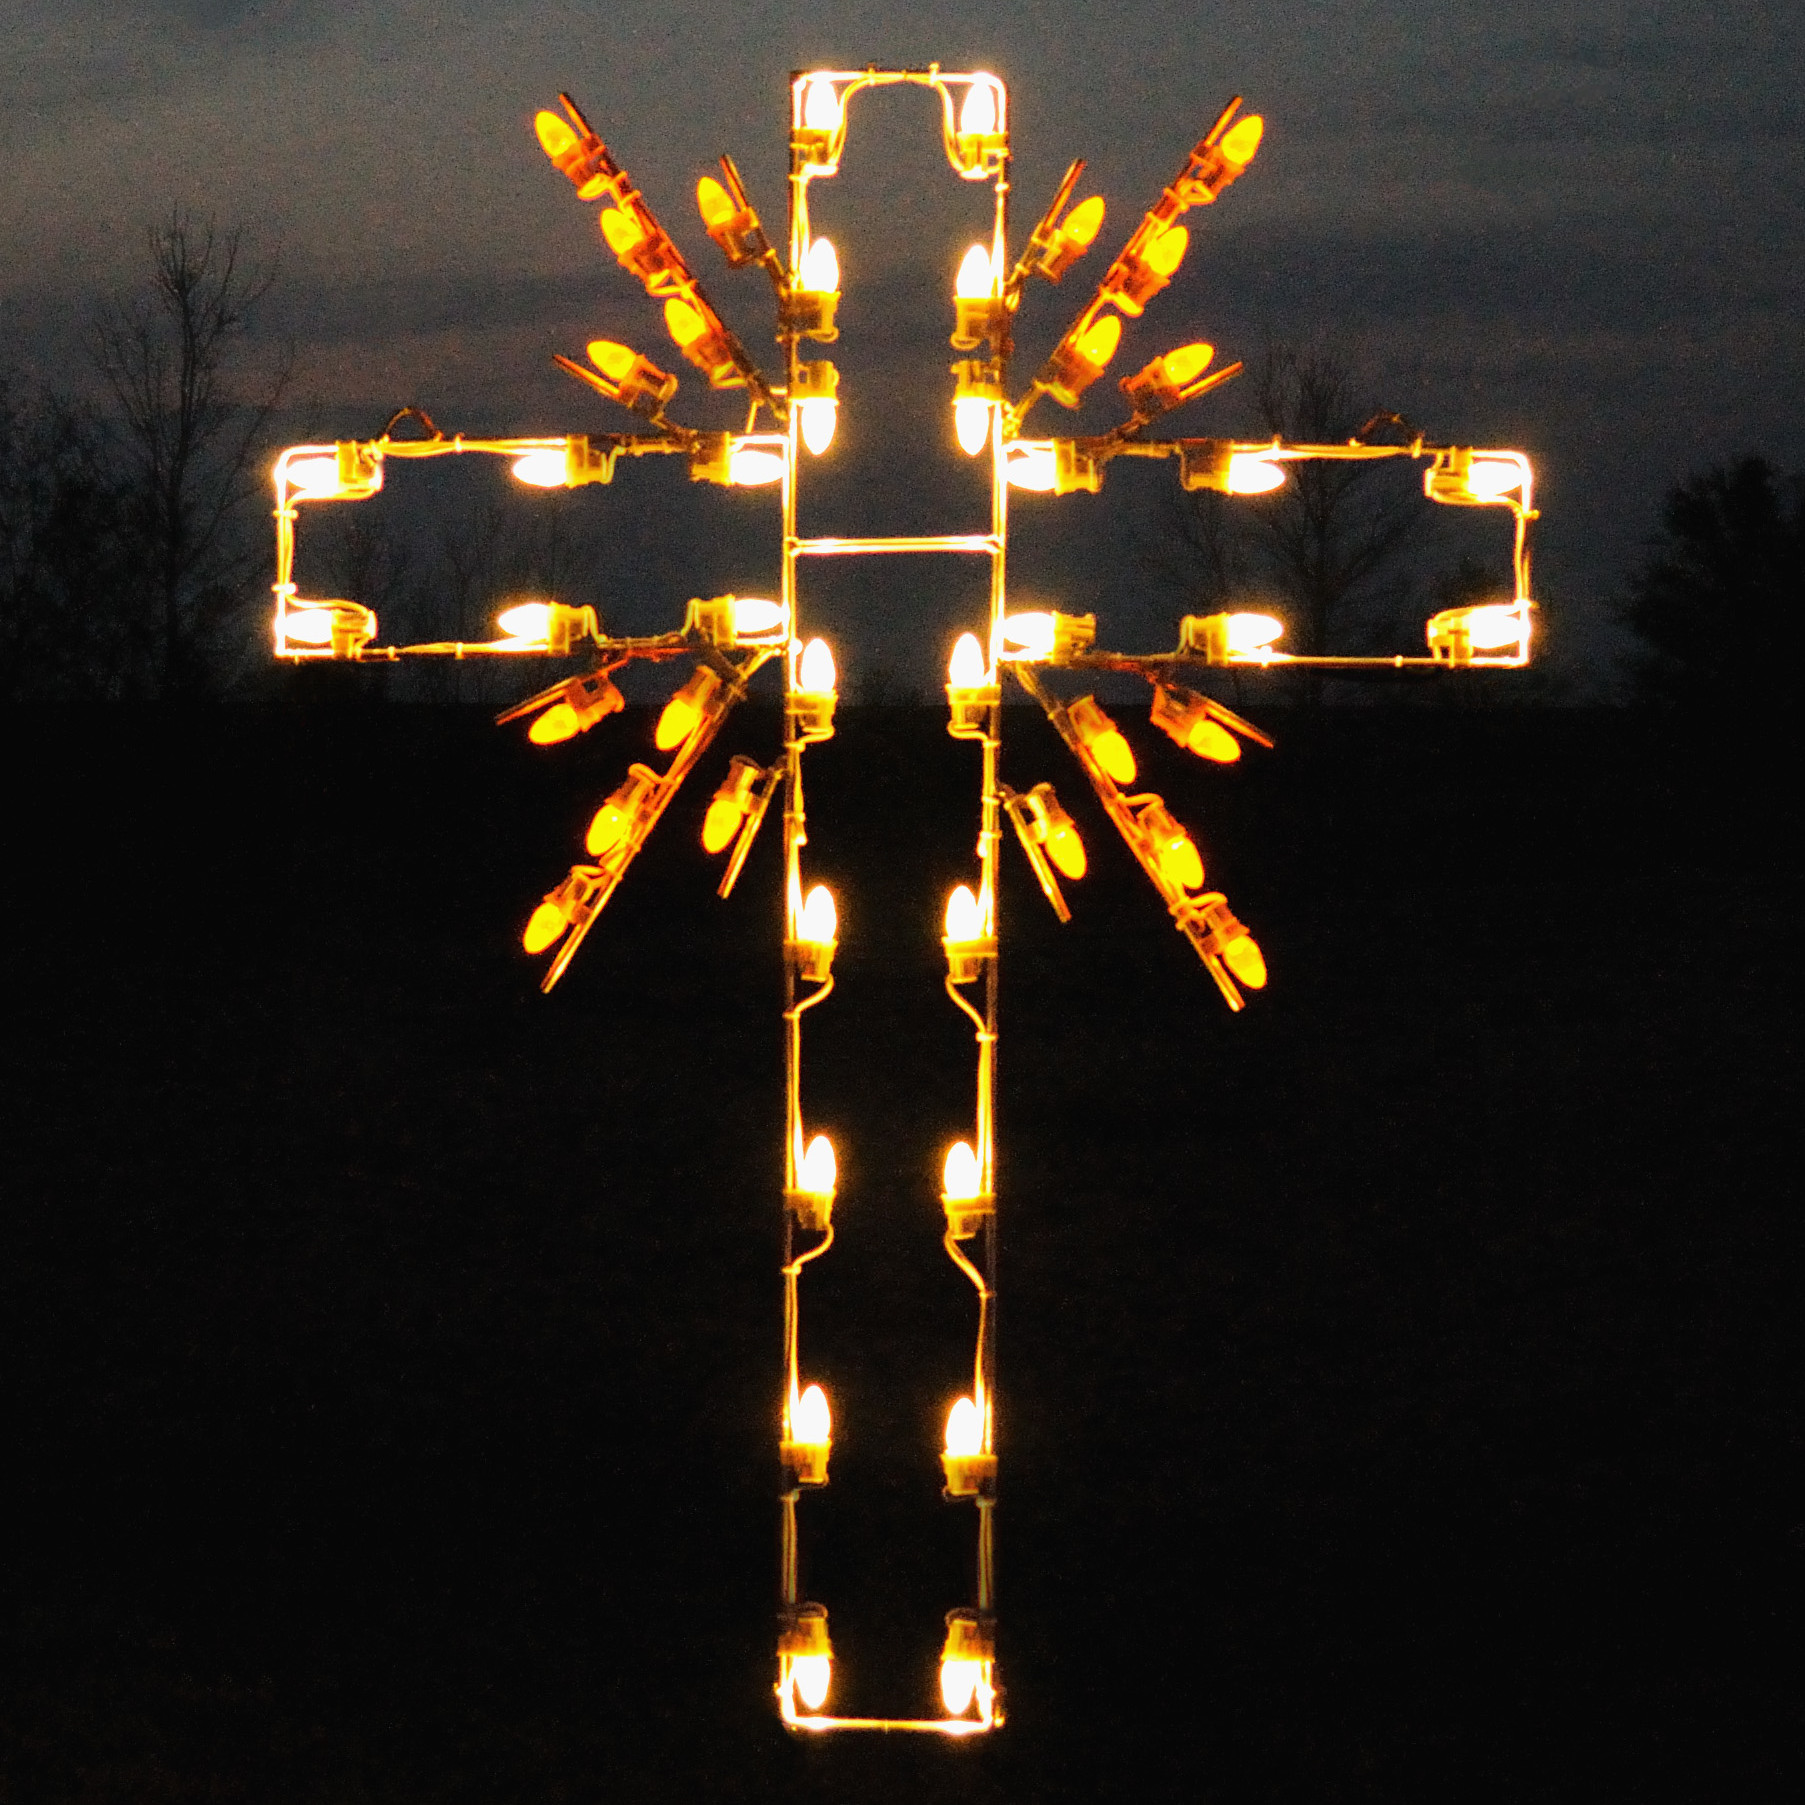 A Collection of Outdoor Christmas Light Displays 20